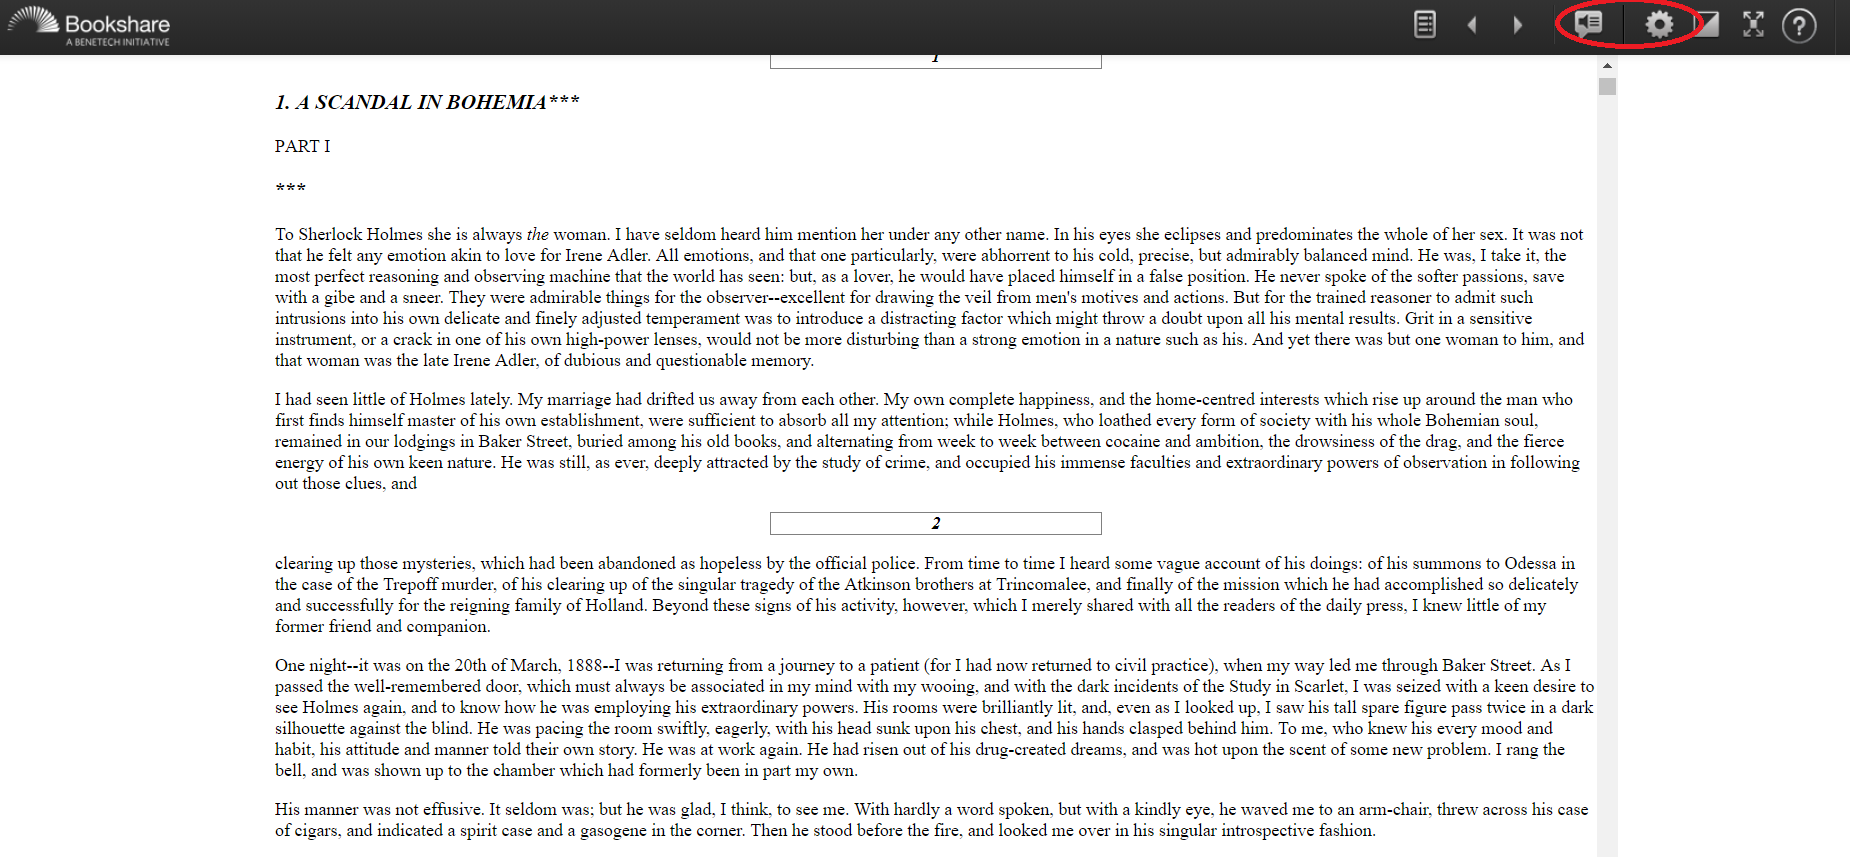 Screenshot of book in Bookshare Web Reader with speaker icon and settings icon called out